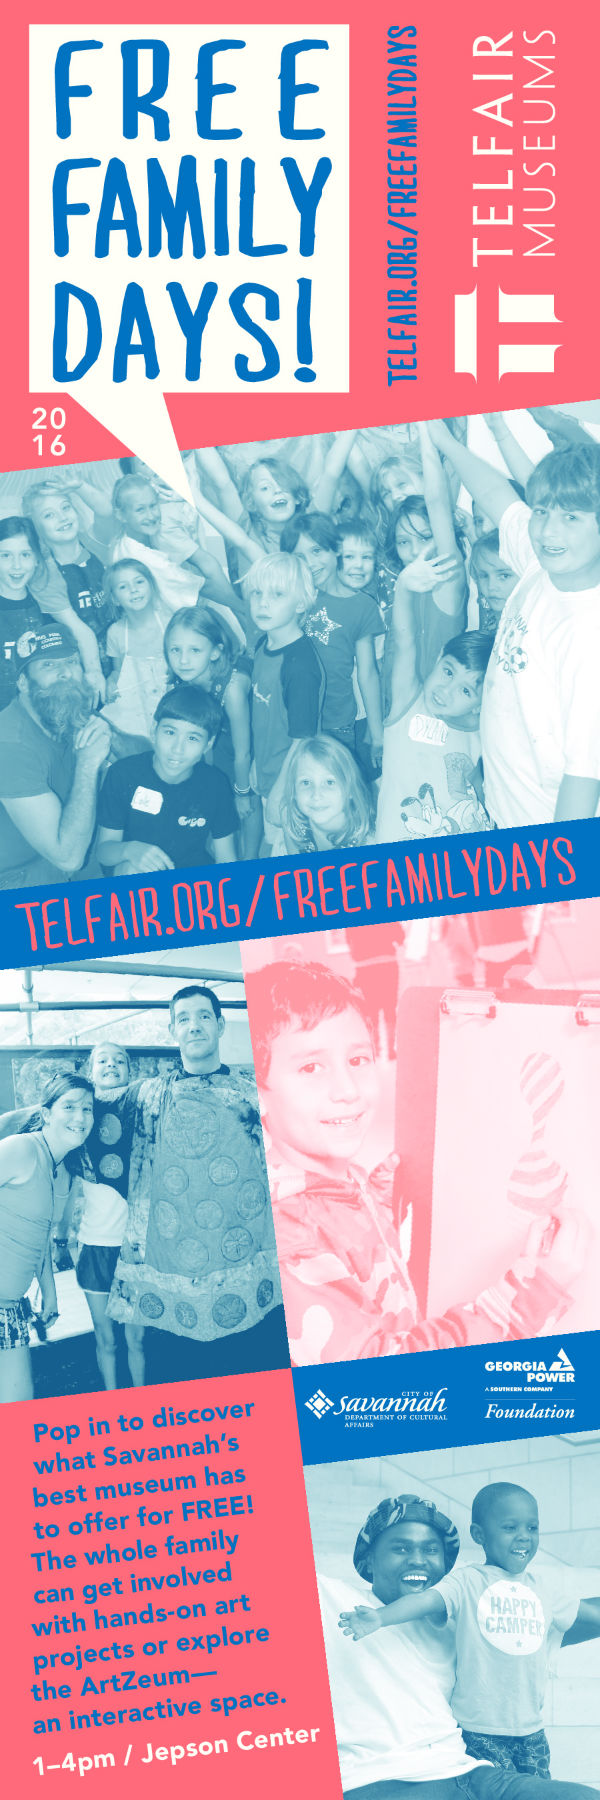 FREE Family Days Telfair Museums